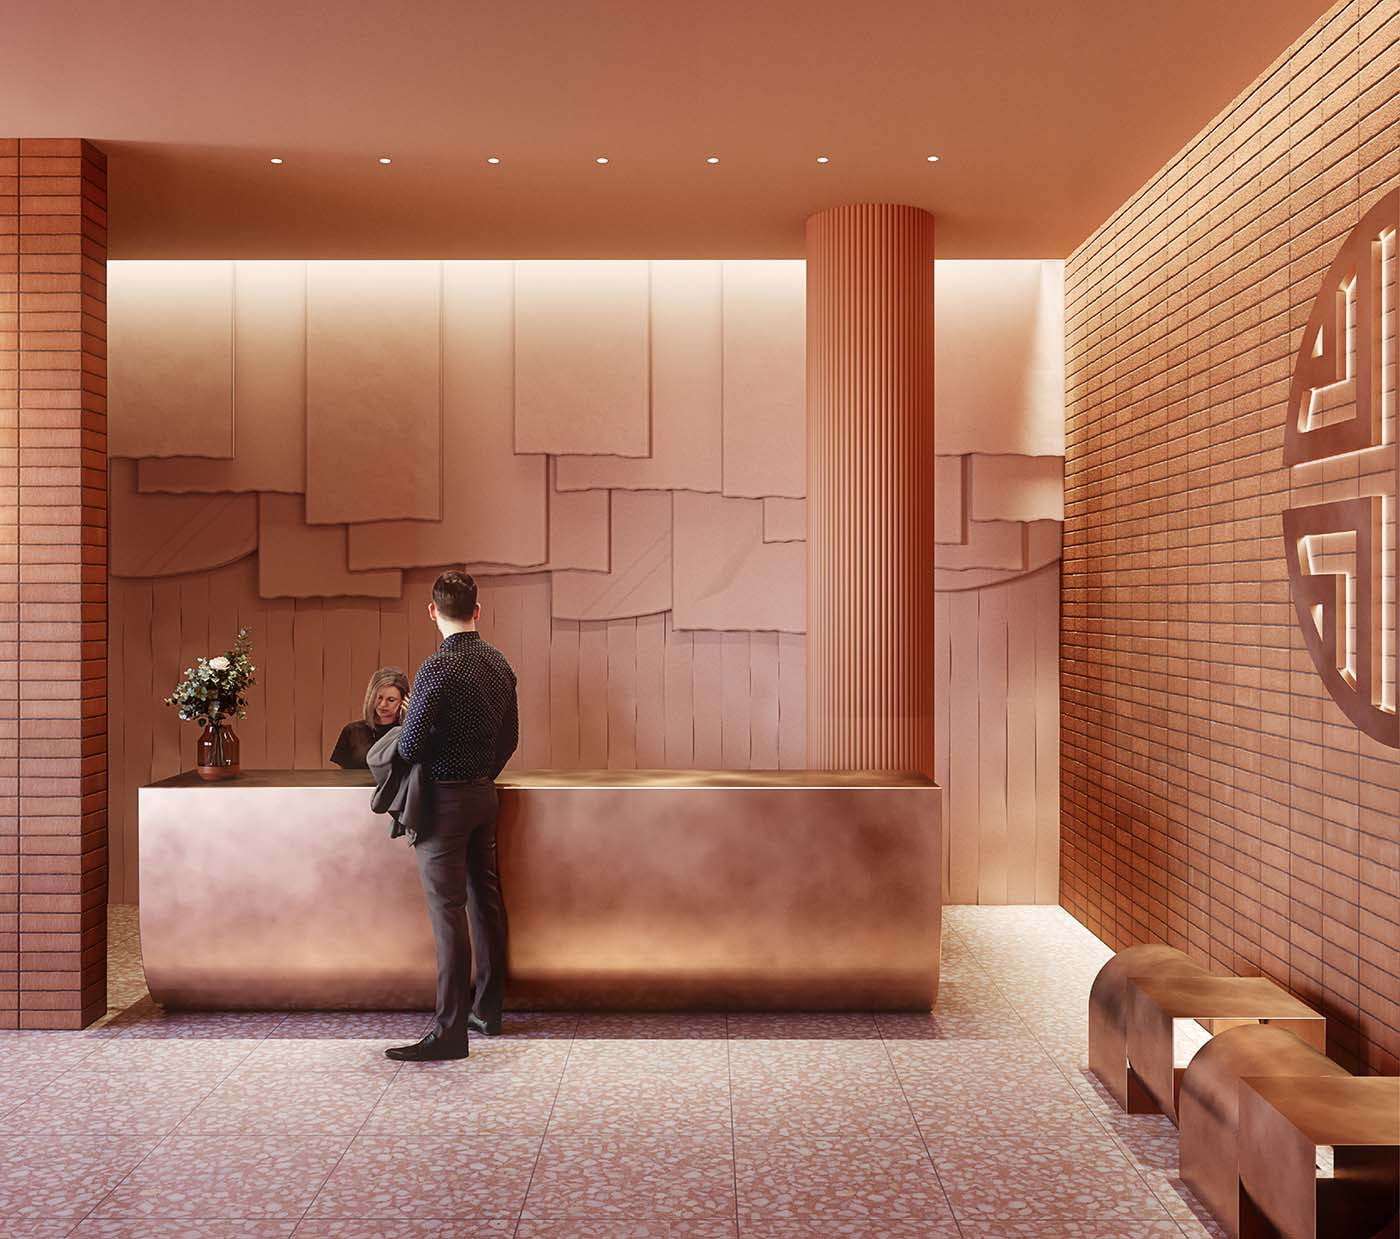 Hotel reception with coral colours showing receptionist and client.